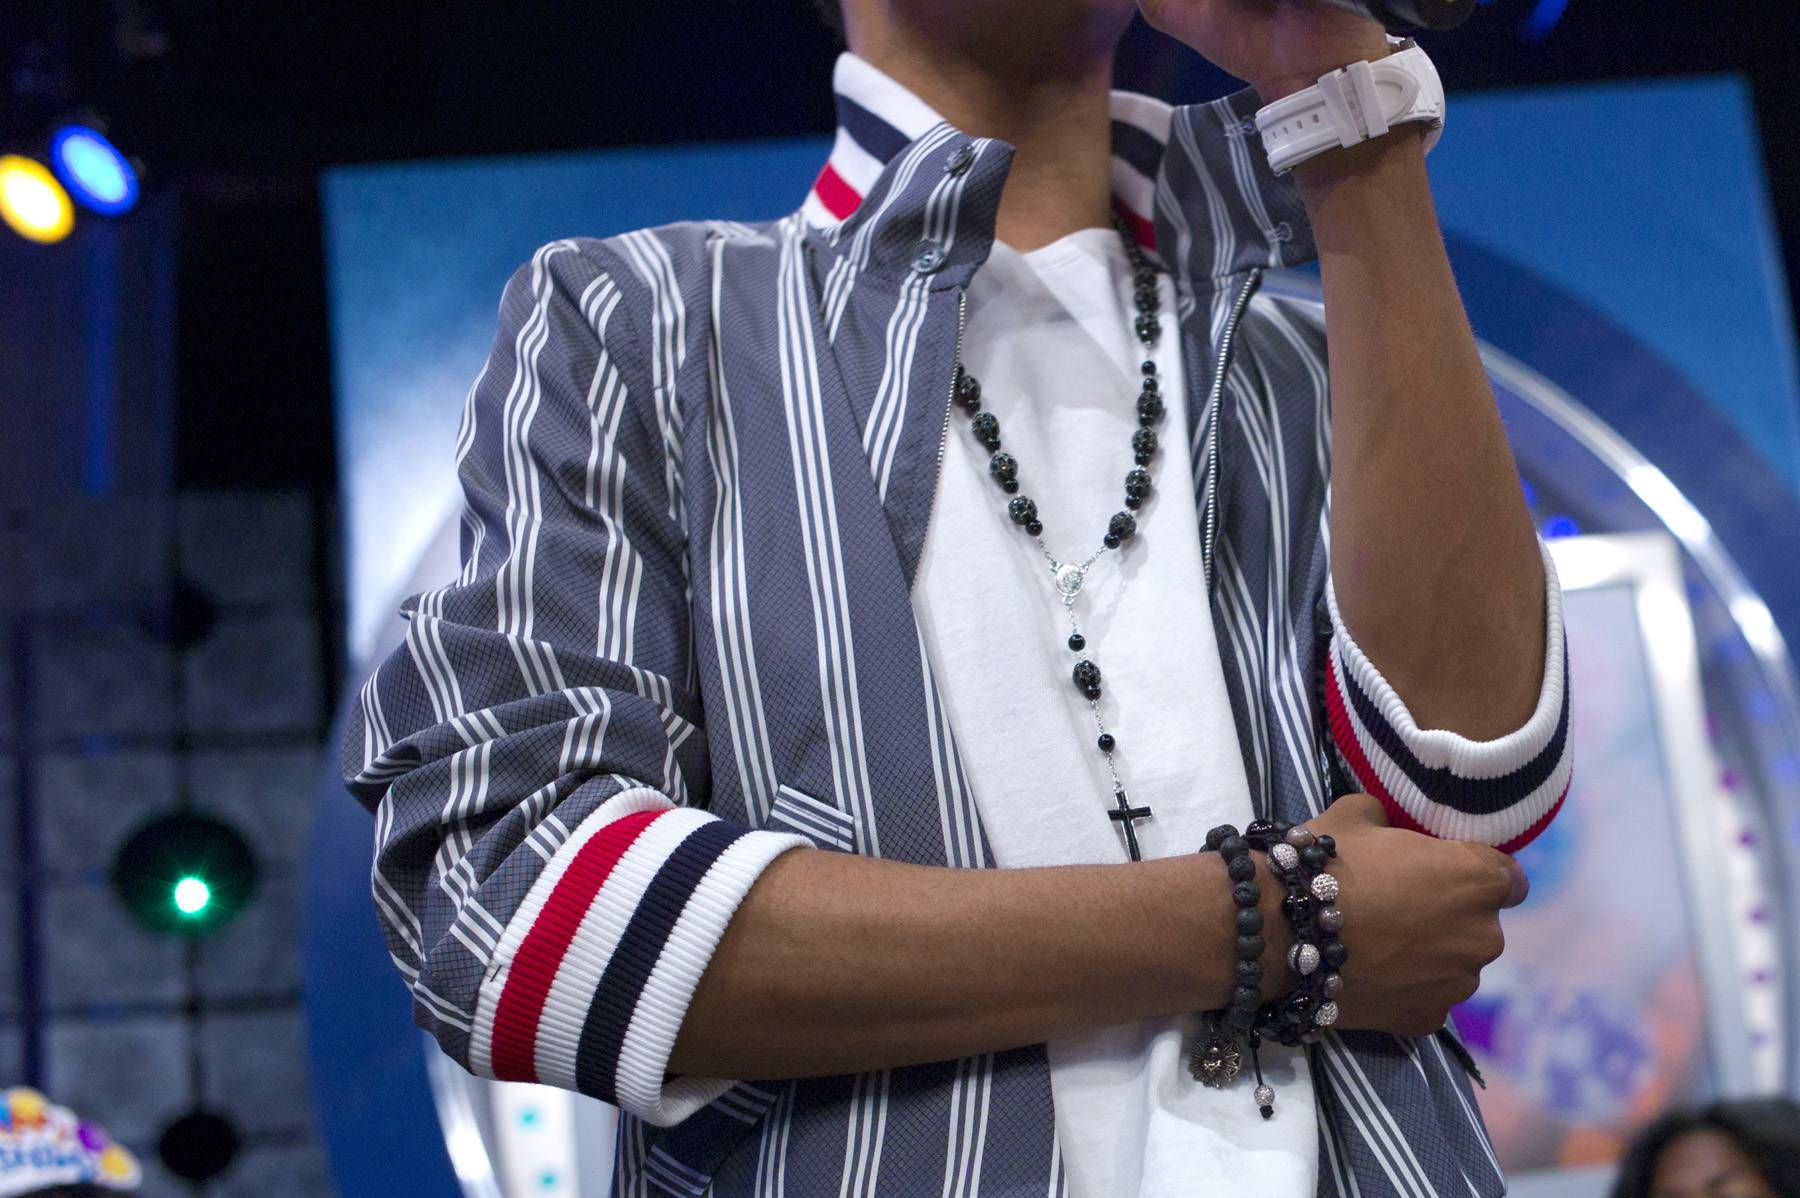 Chin Check - Diggy Simmons reflects during a commercial break at 106 & Park, January 20, 2012. (Photo: John Ricard / BET)